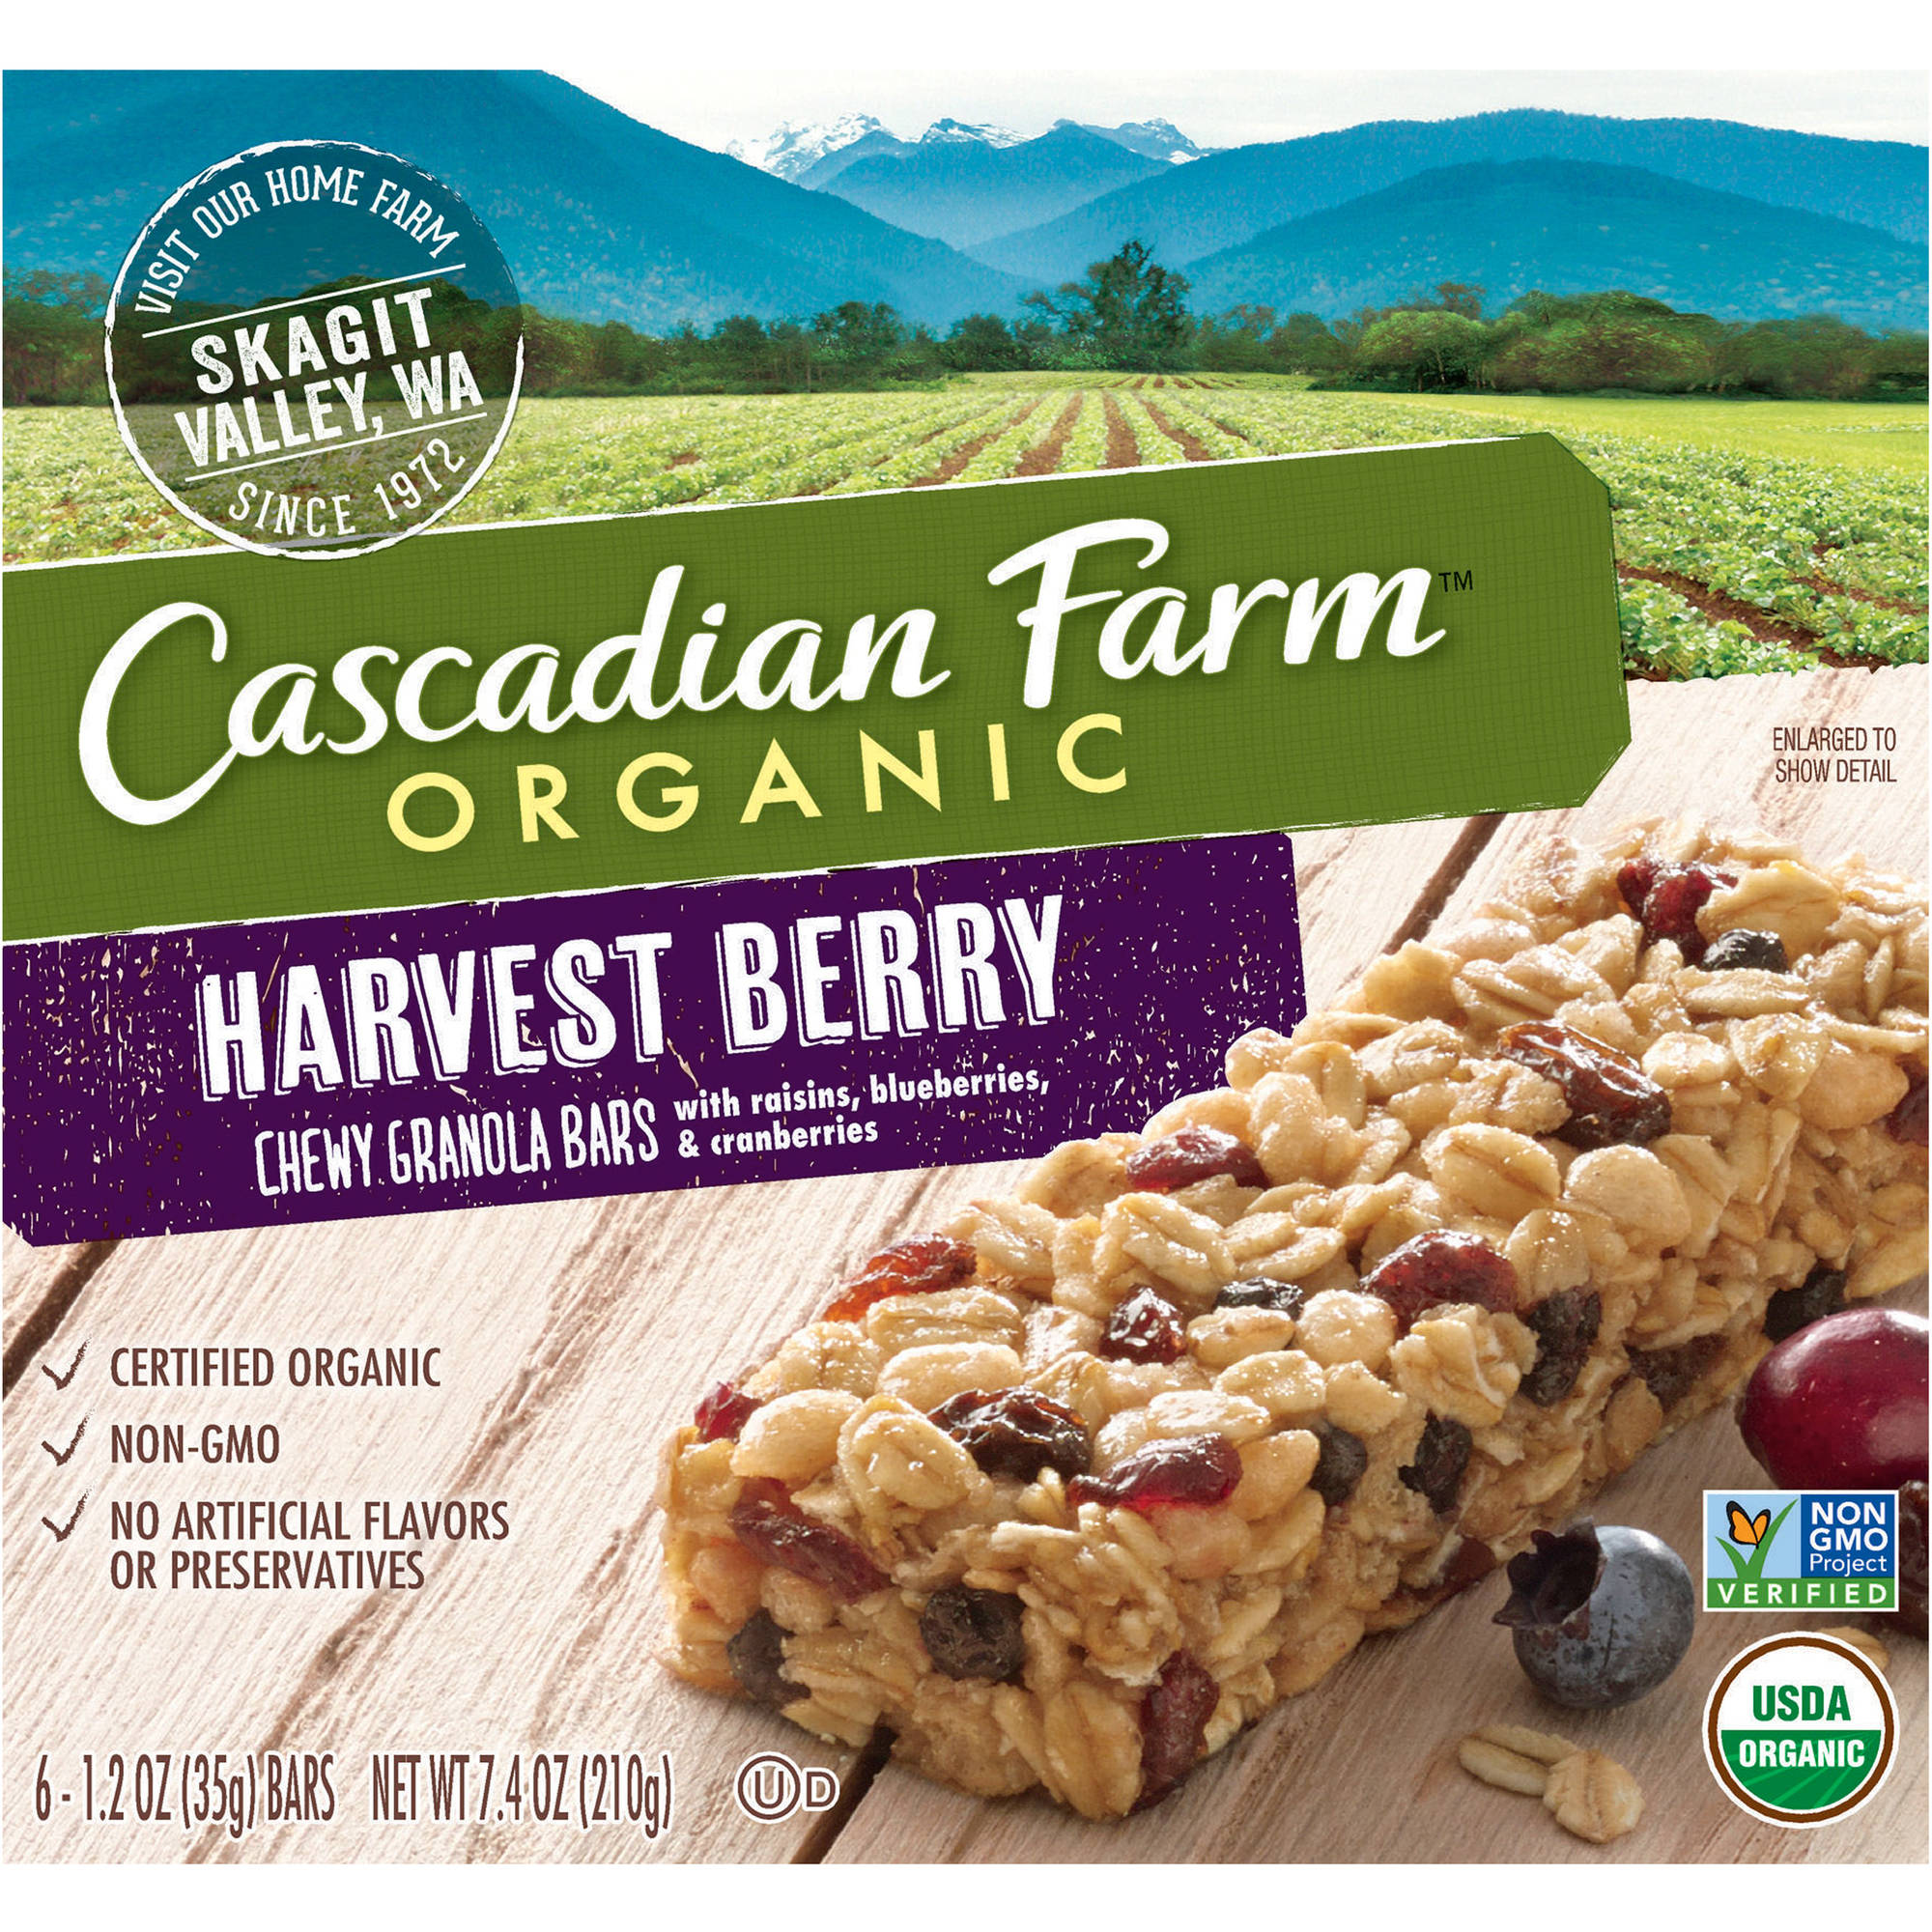 Cascadian Farm Organic Harvest Berry Chewy Granola Bars, 1.2 oz, 6 count